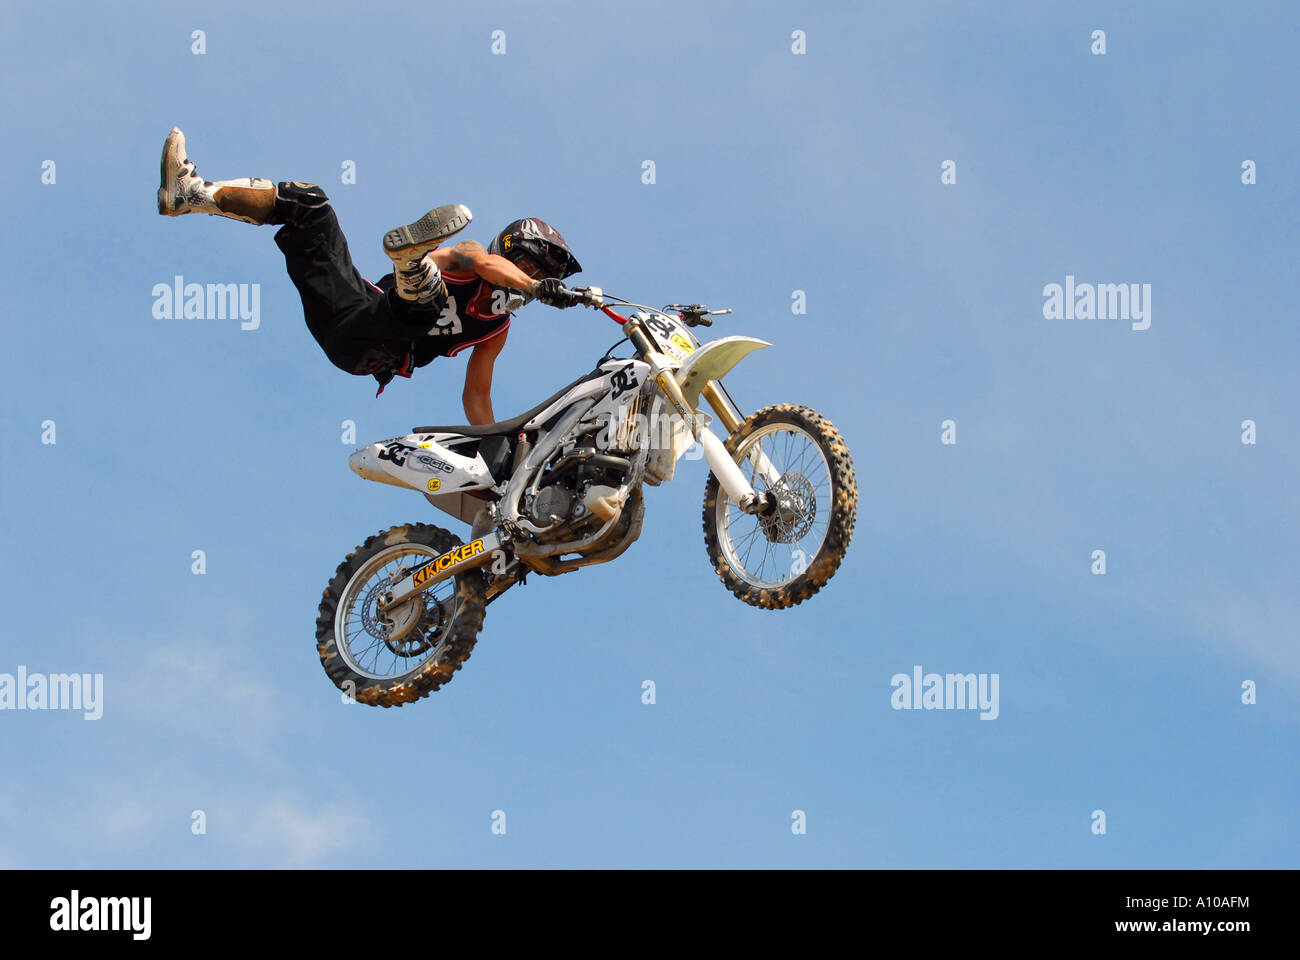 Dirt Bike Rider stunt rider Photo Stock